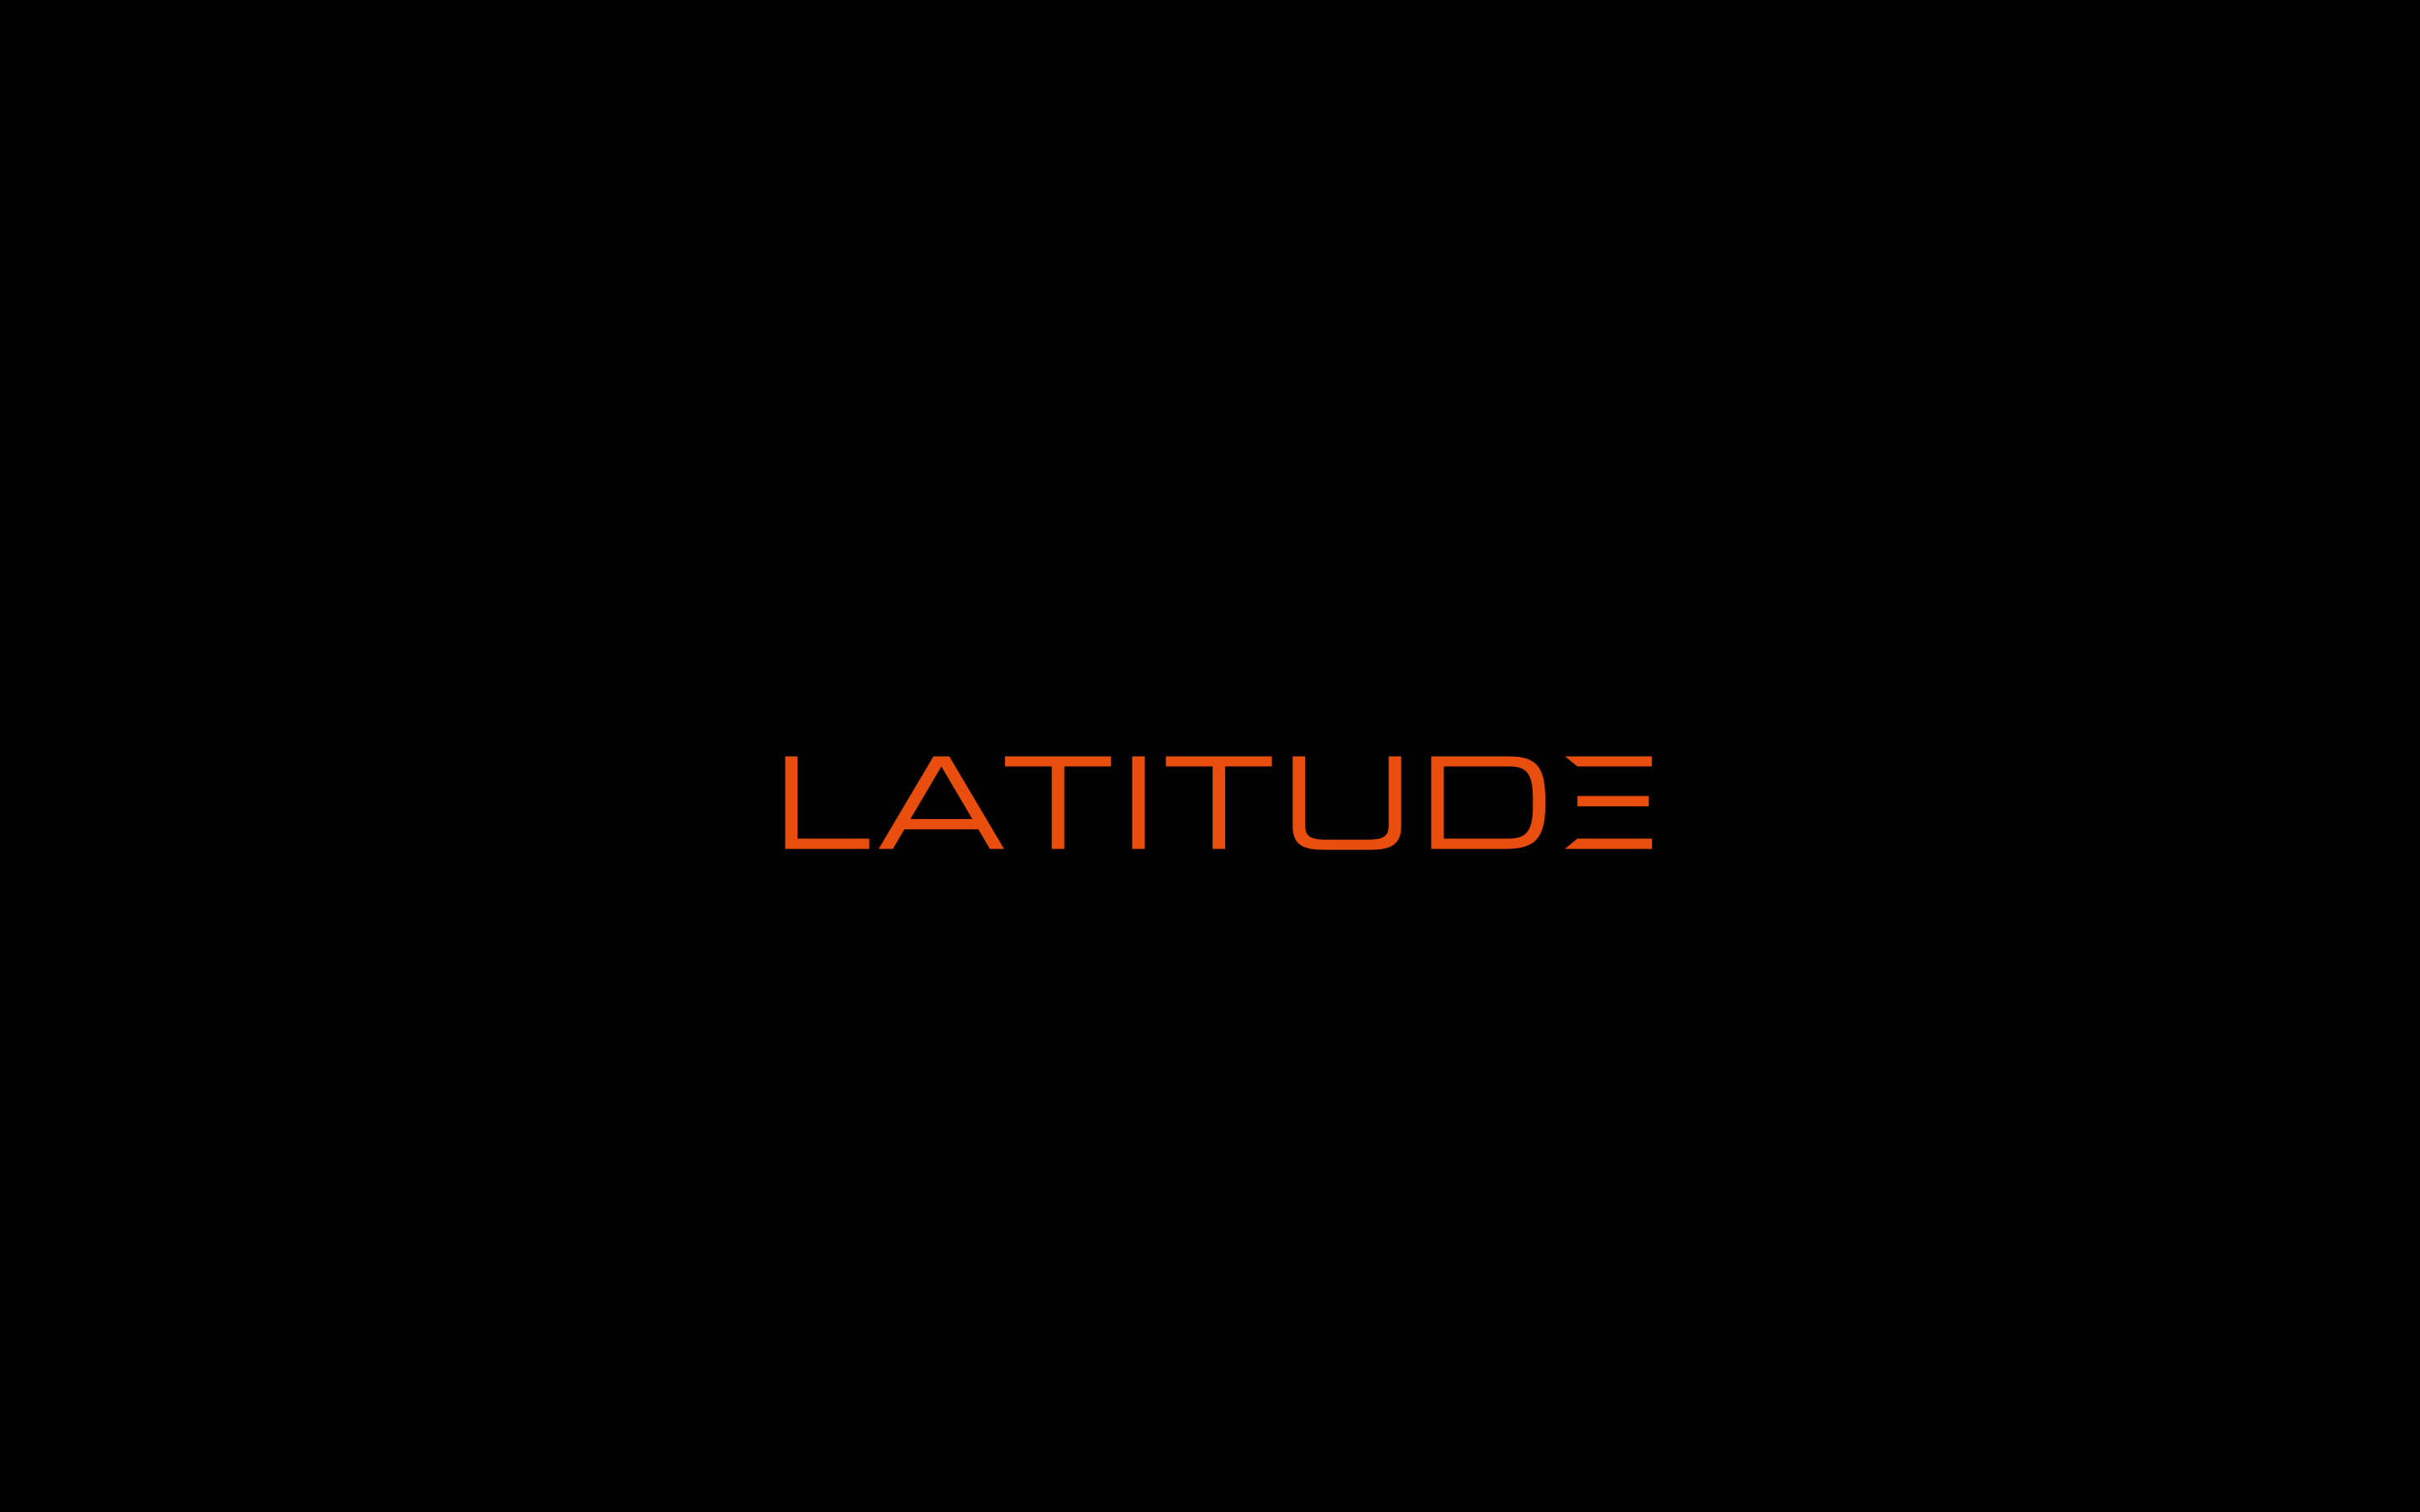 LATITUDE COMMUNICATION NANTES